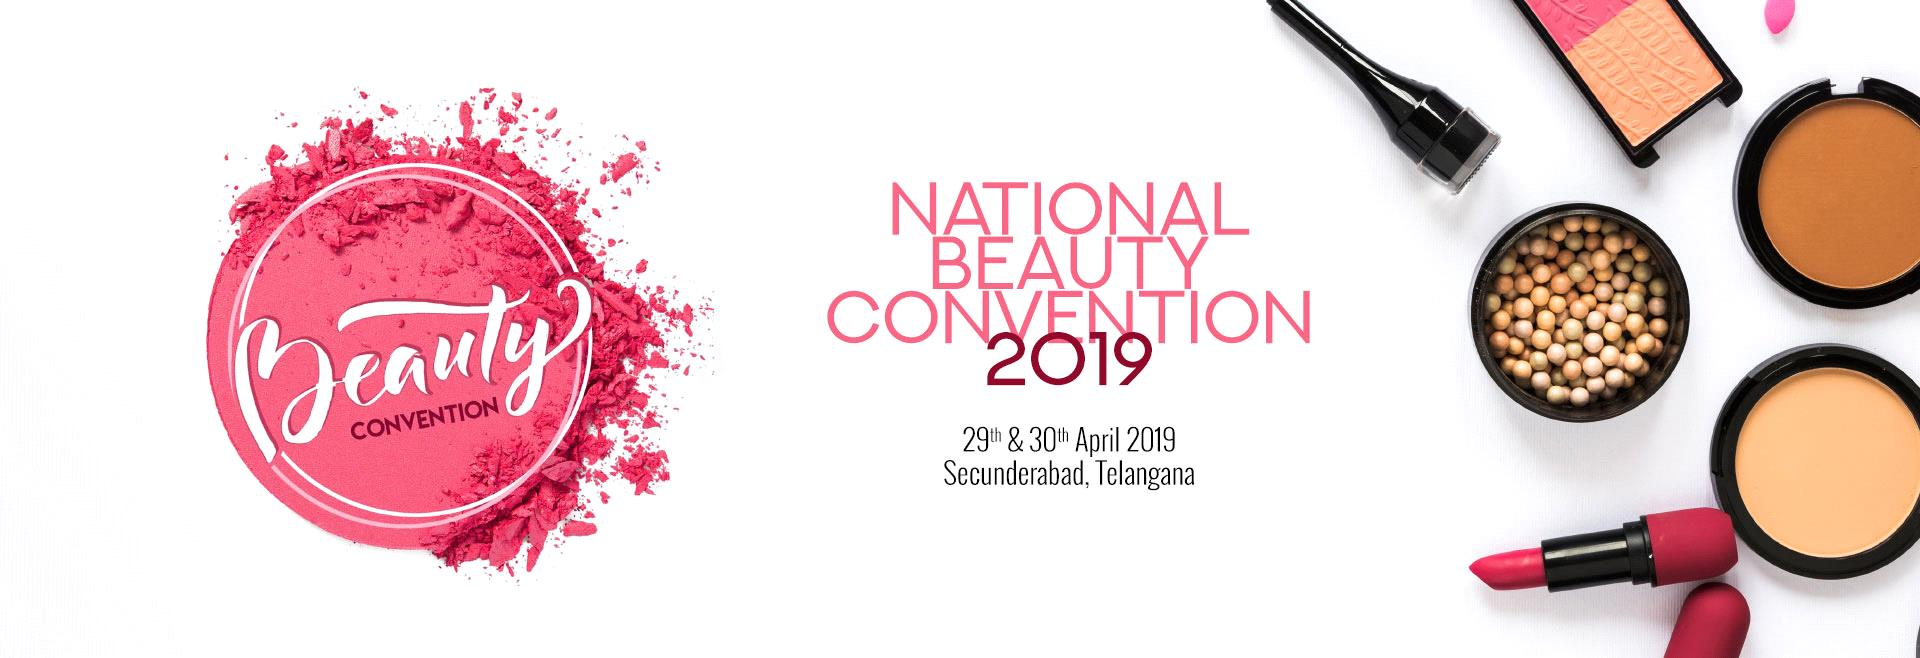 National Beauty Convention 2019